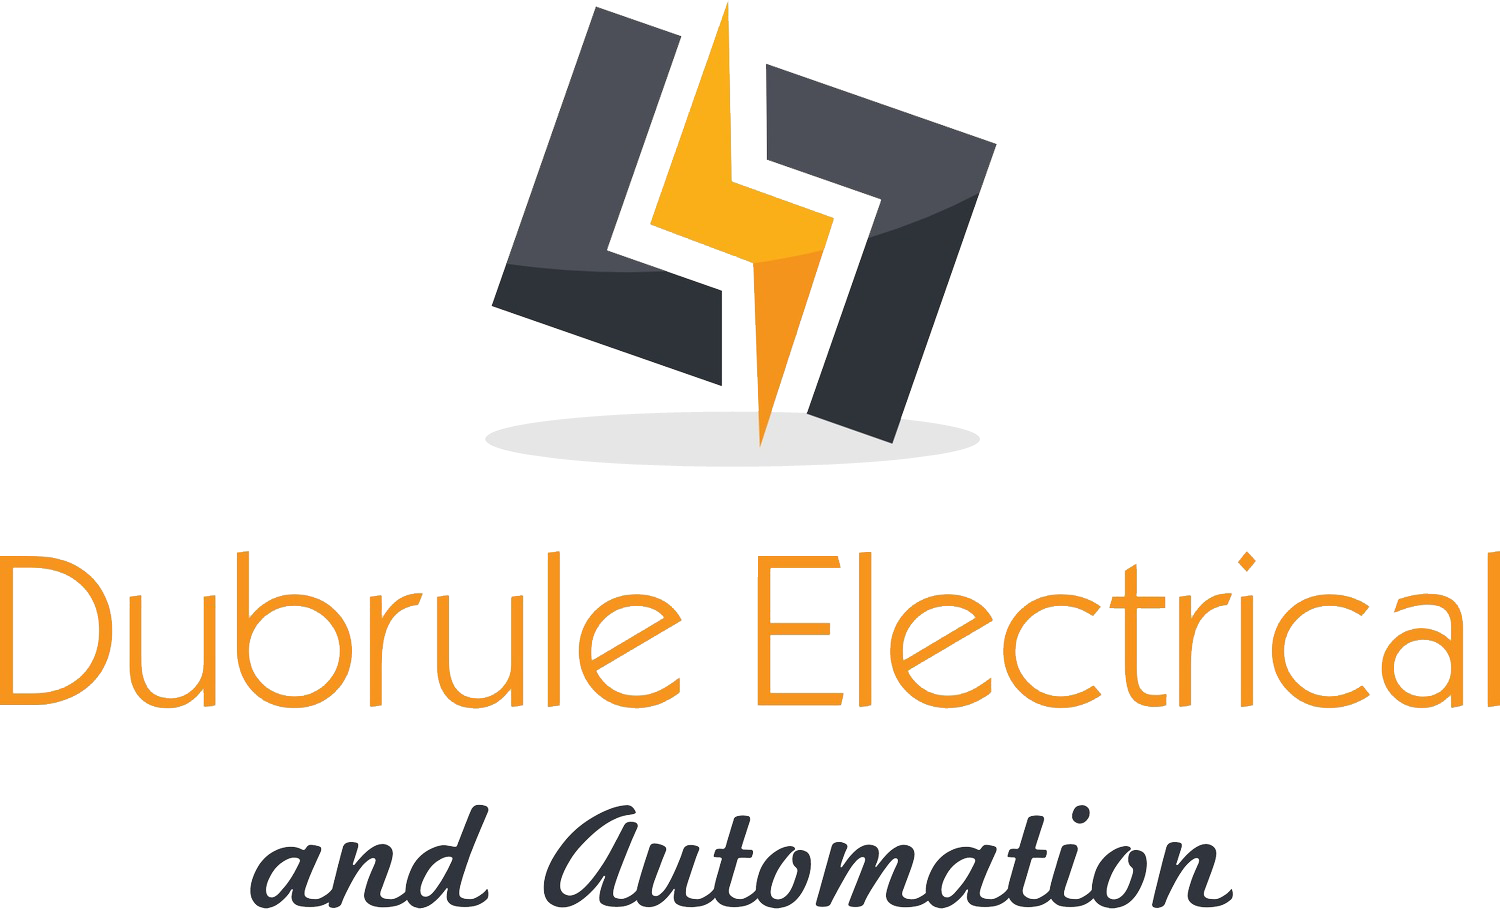 Dubrule Electrical & Automation